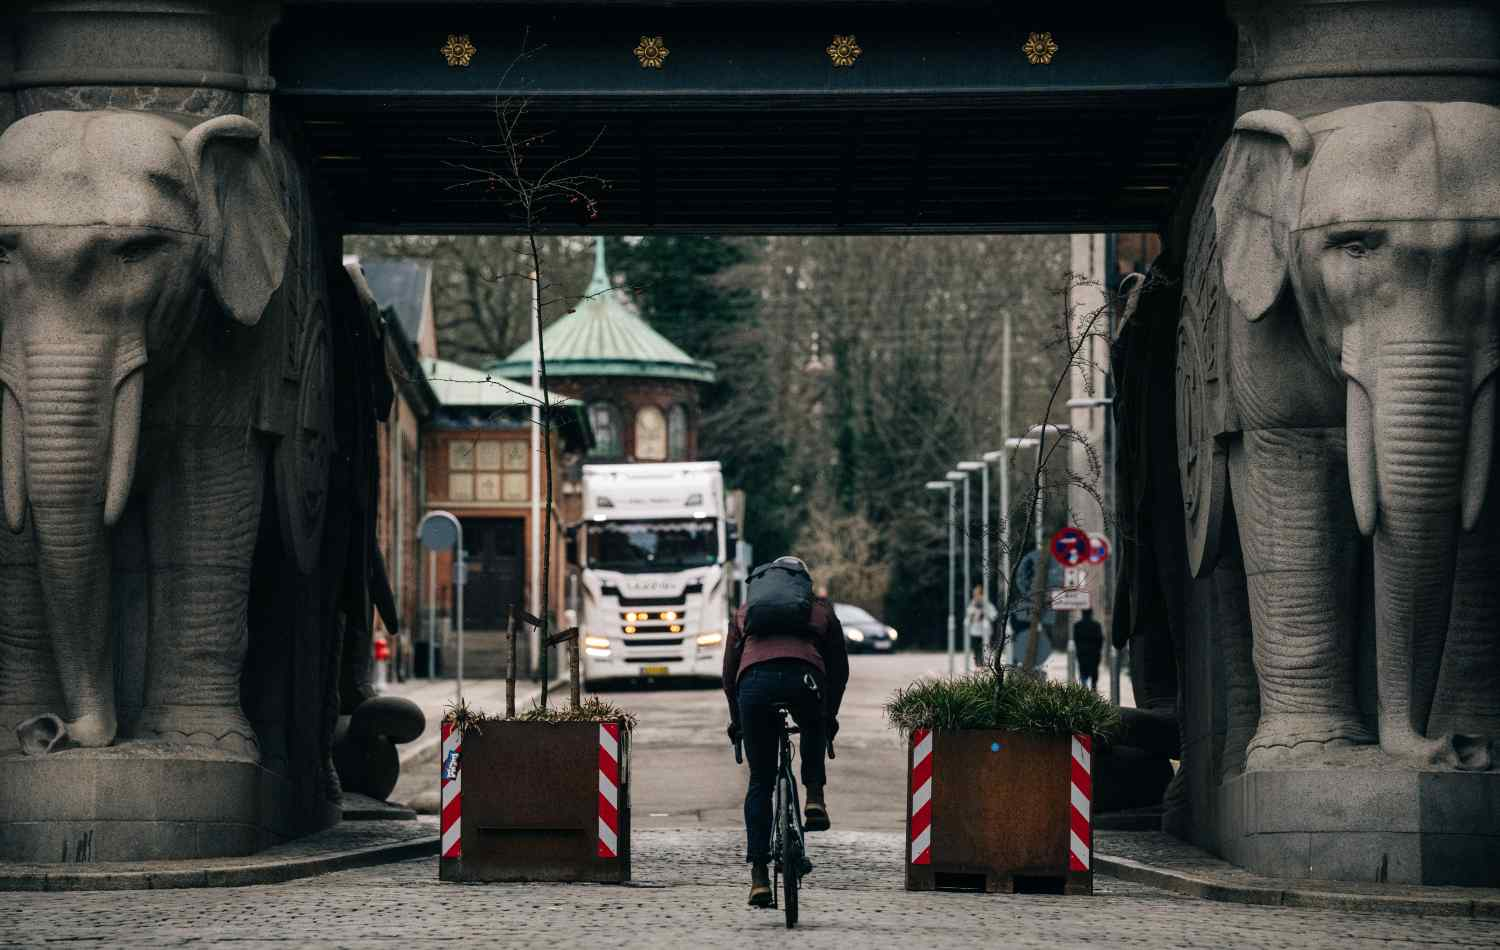 A cyclist rides through Copenhagen wearing the City Backpack